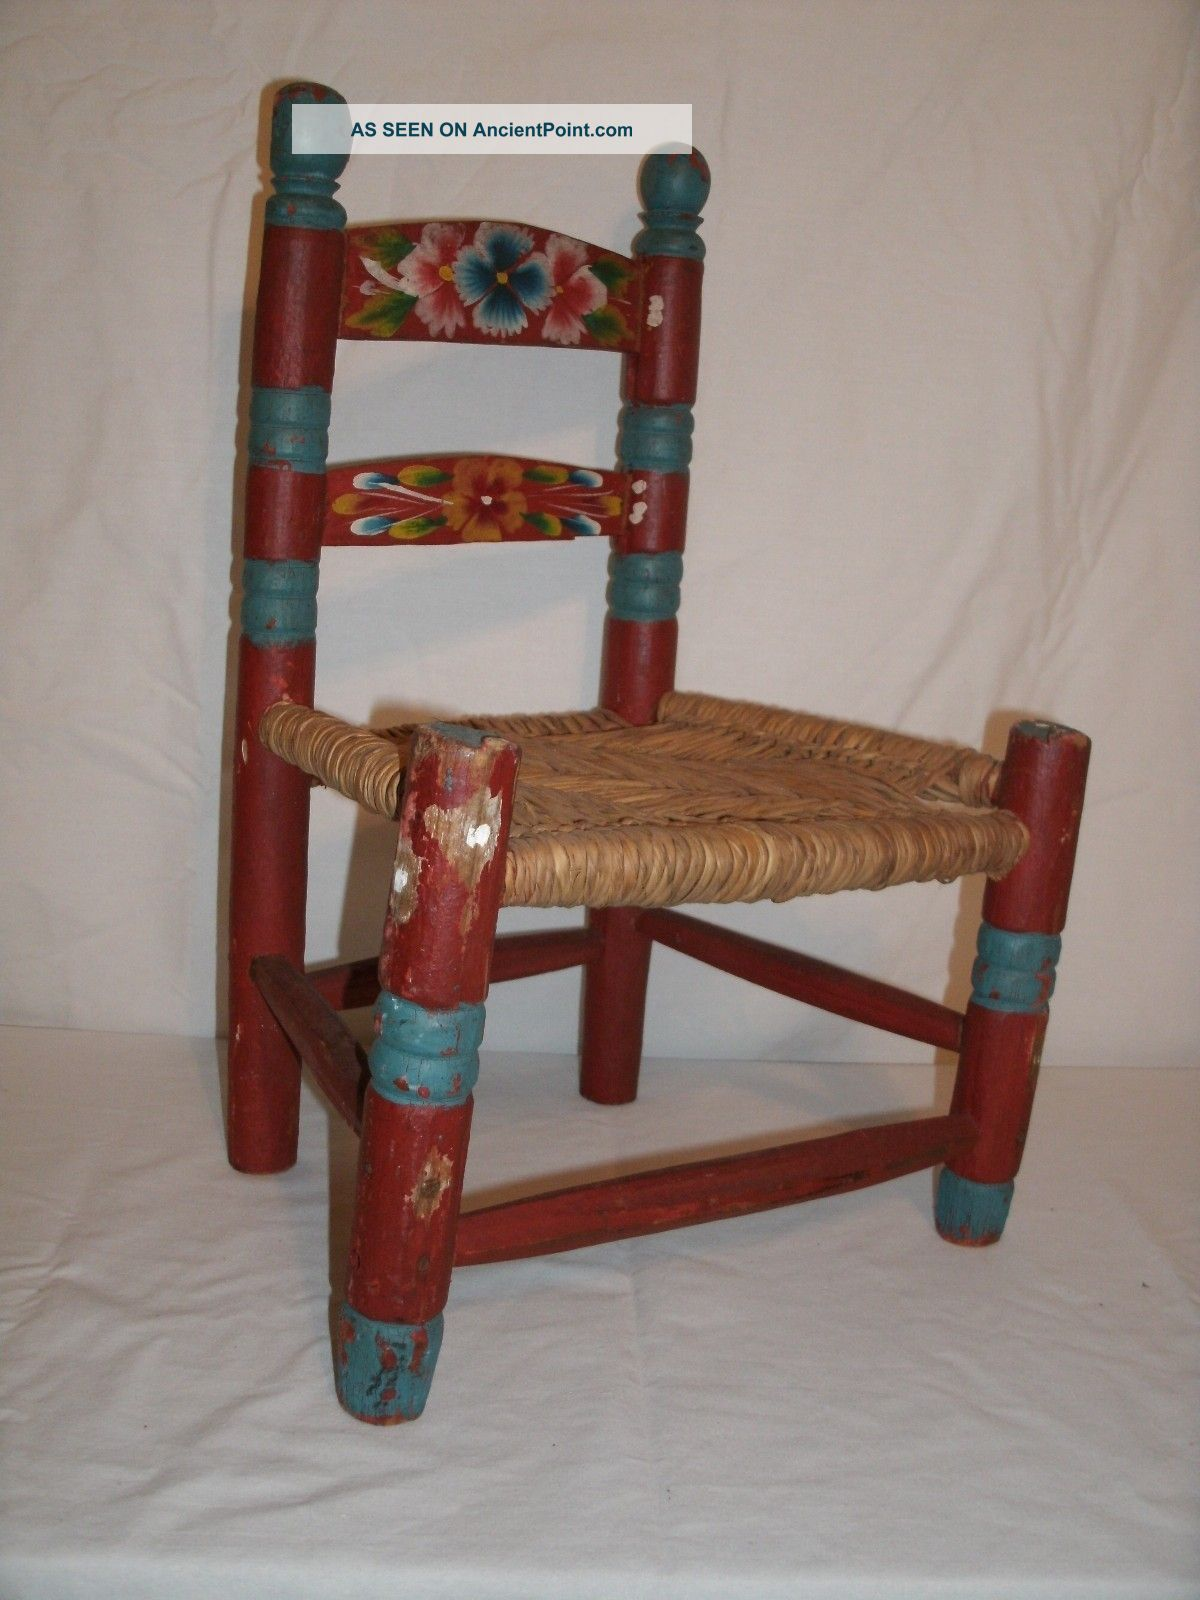 & Vintage Mexican Hand Painted Red u0026 Teal Wood Childs Chair